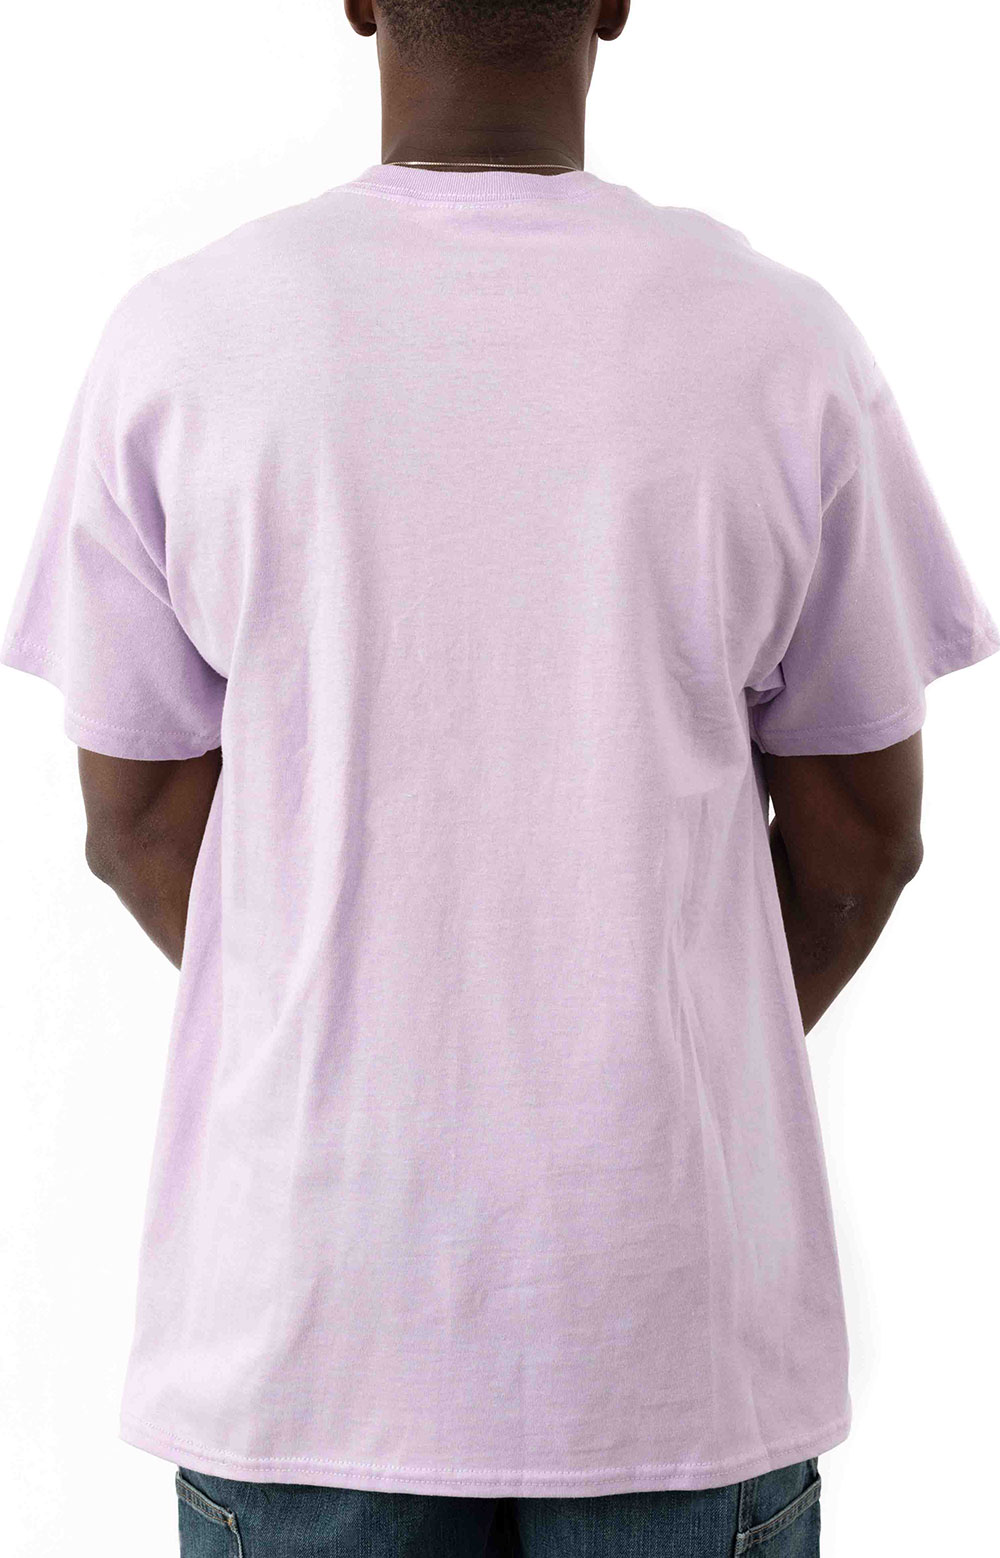 My Melody T-Shirt - Orchid  3